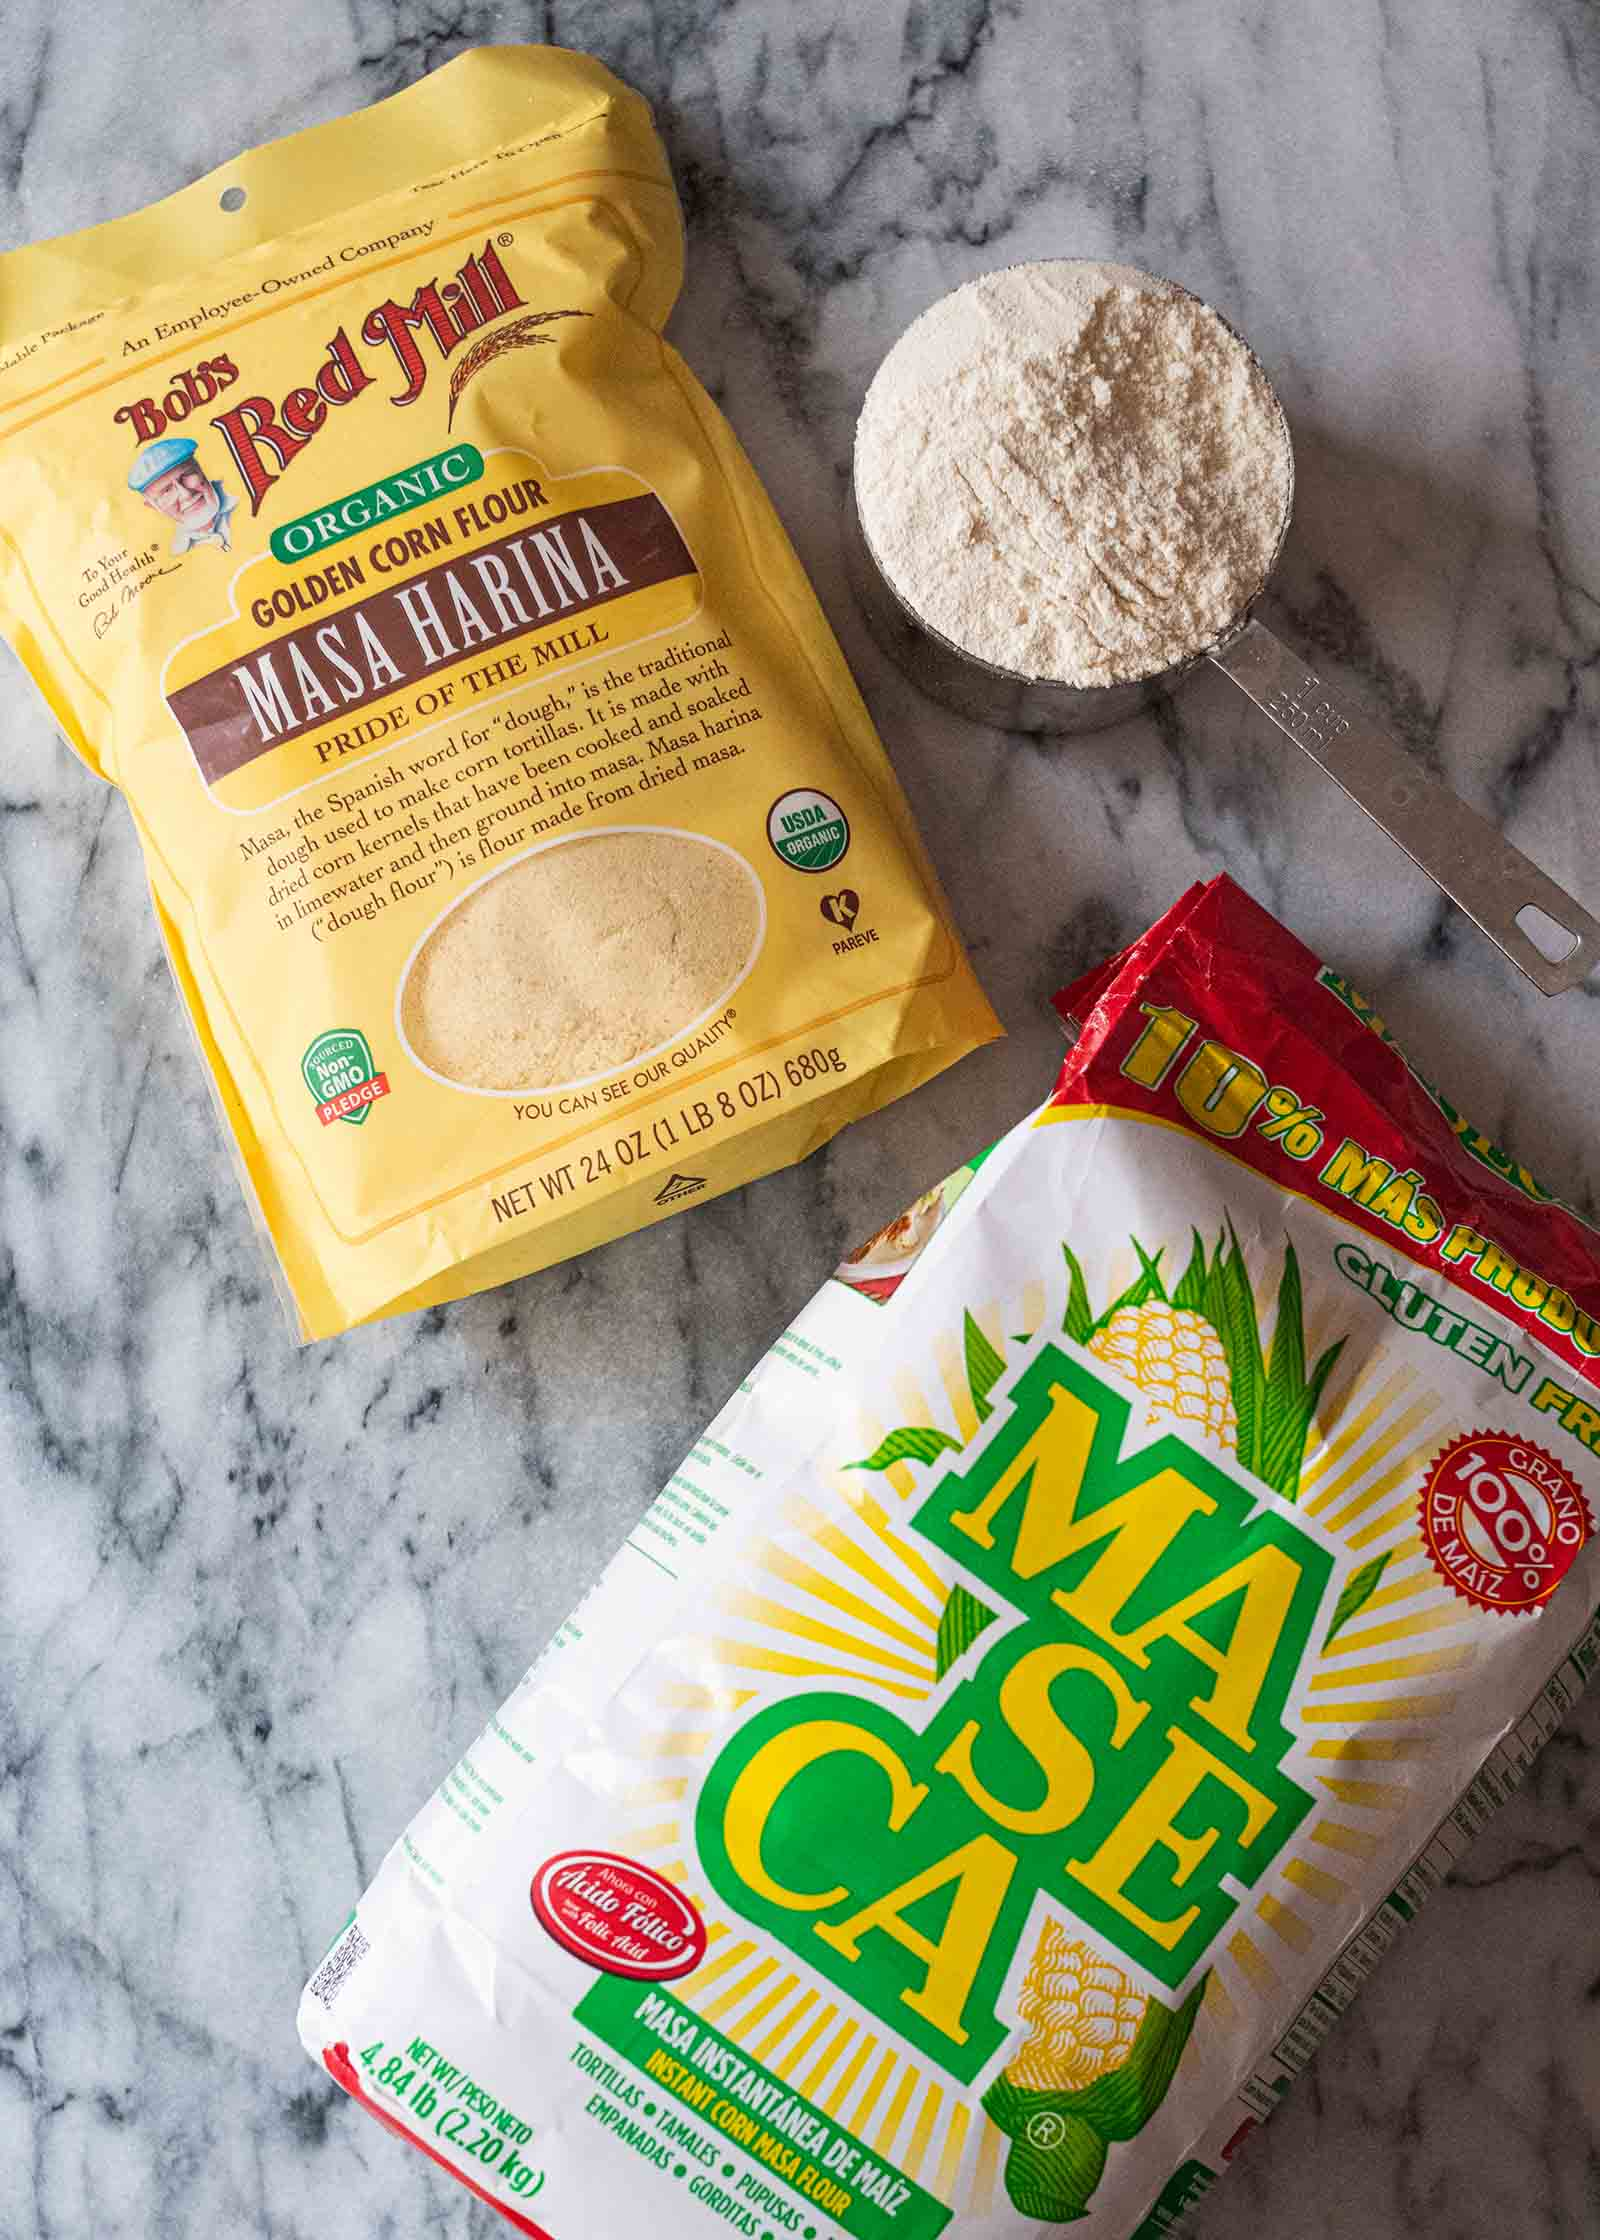 A bag of Bob's Red Mill Masa Harina and a bag of Maseca Instant Yellow Corn Flour. A measuring cup is filled with corn flour is in the upper right corner..